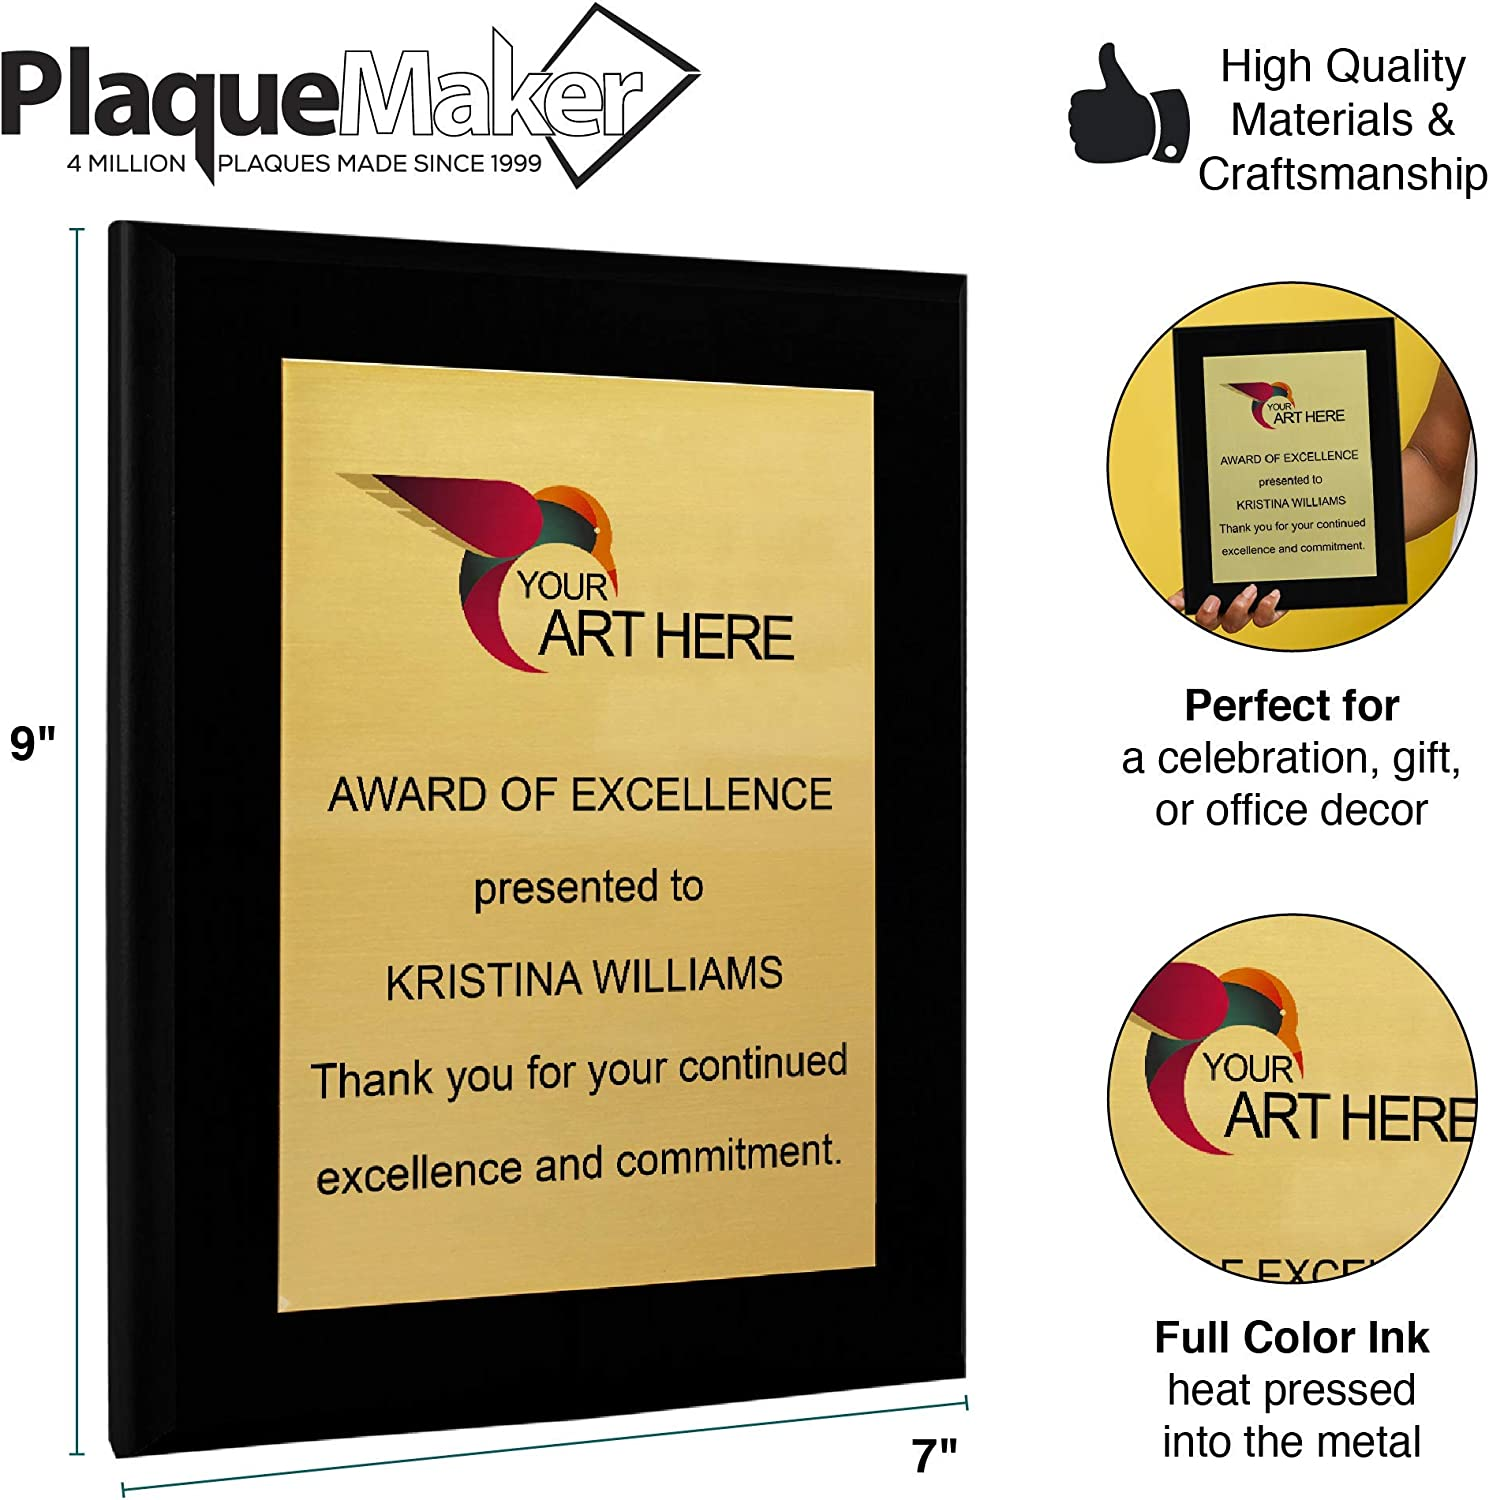 7 x 9, Gold Metal, Black Board PlaqueMaker Personalized Award Plaque Aluminum Recognition Certificate Customized Text and Picture Options